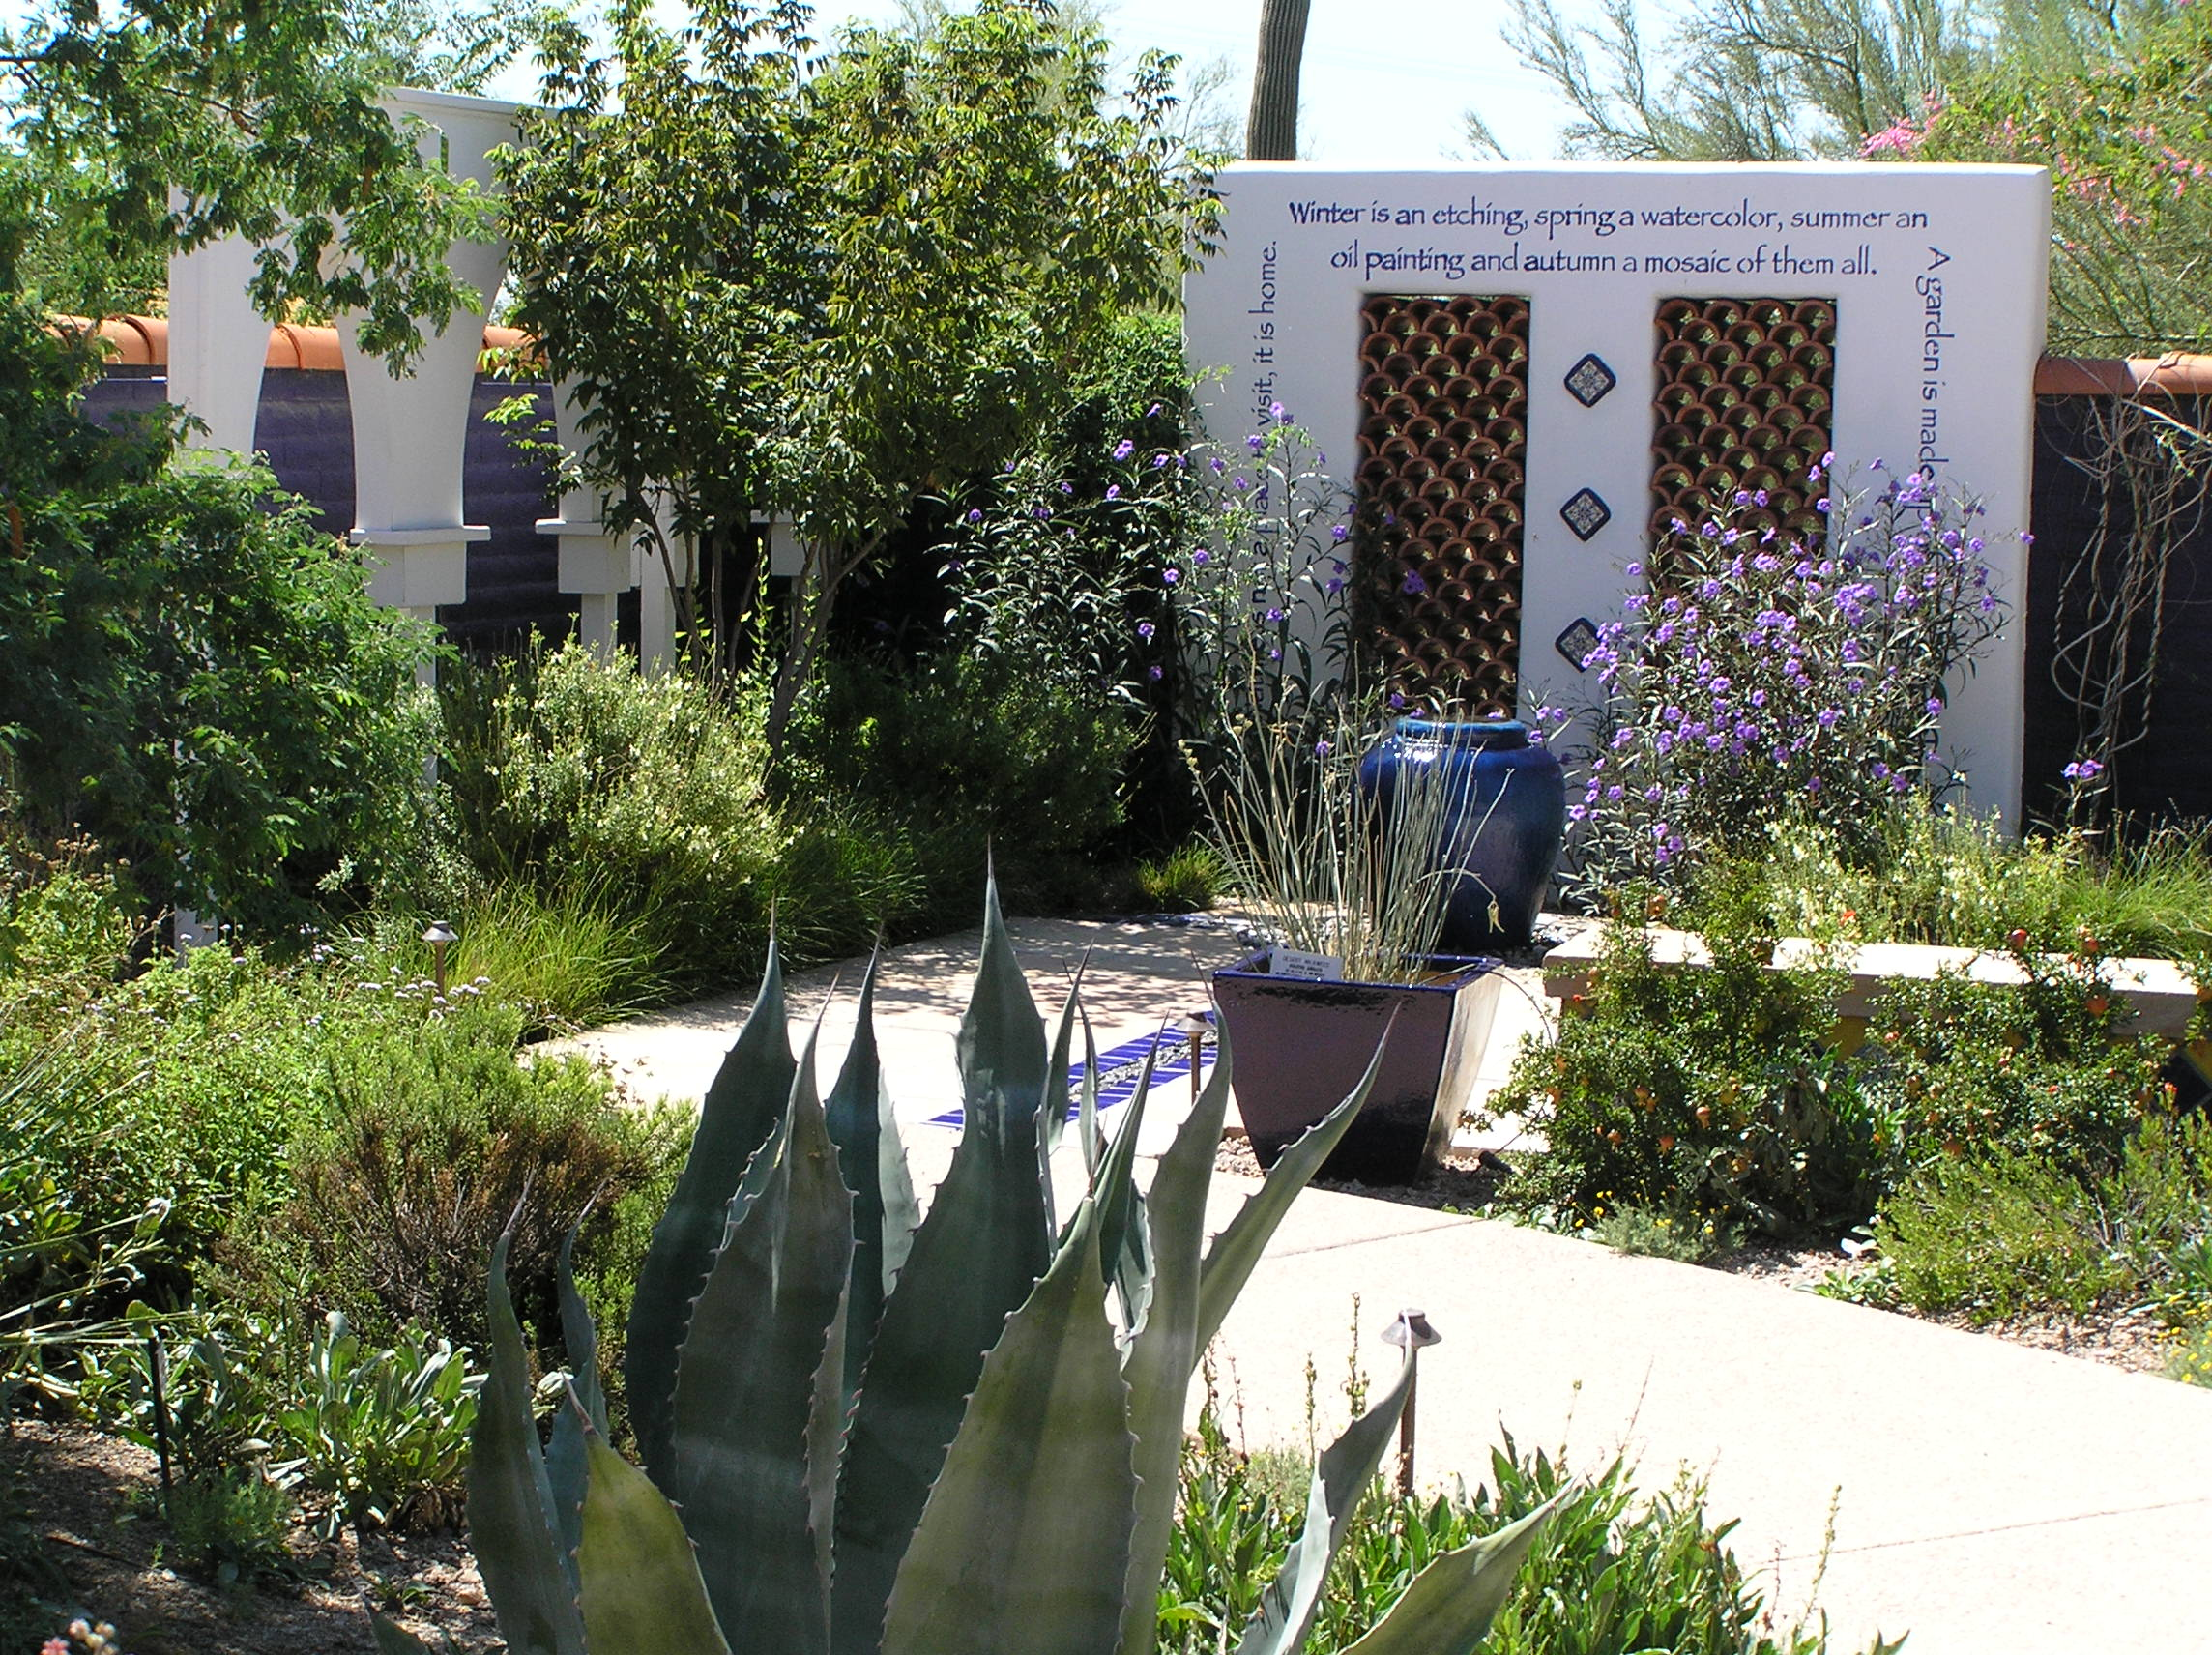 File:Moorish Garden, Desert Living Courtyard At Tohono Chul, Tucson.JPG